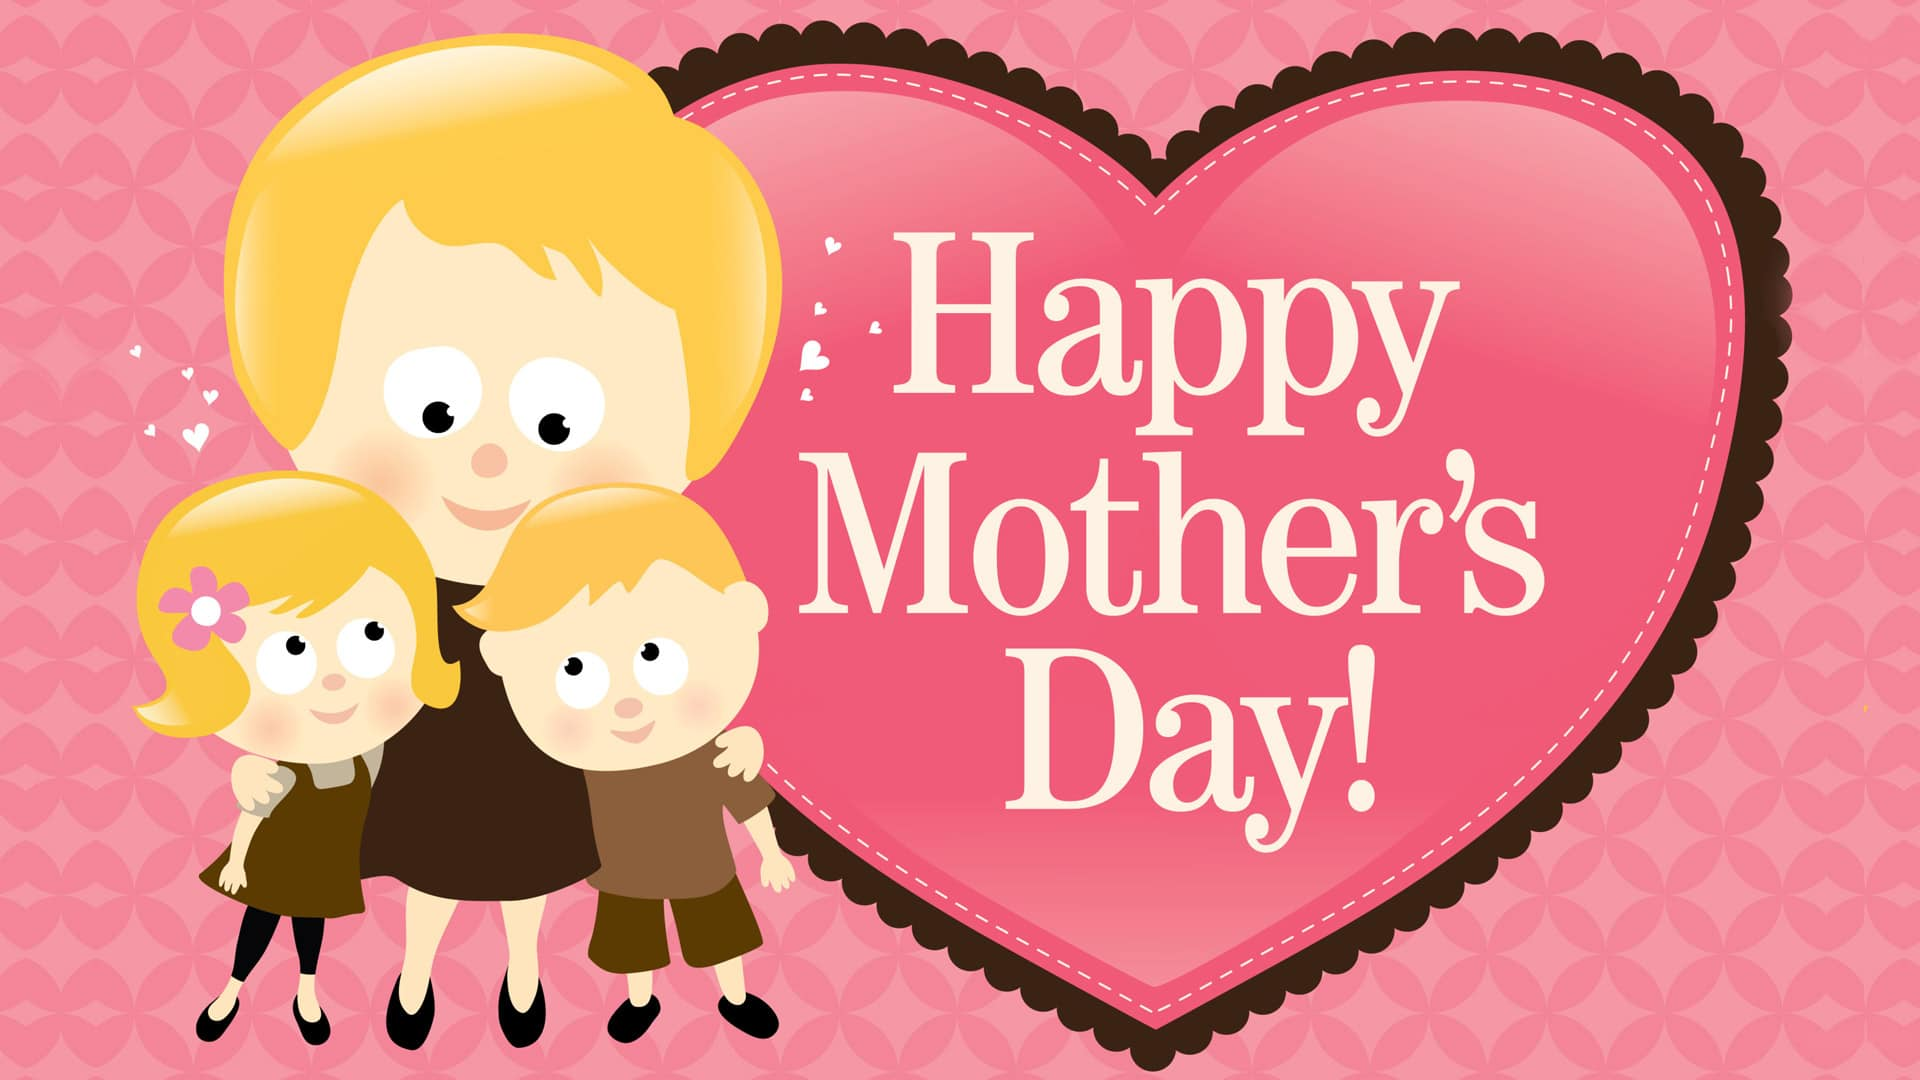 Mothers Day Photo Hd